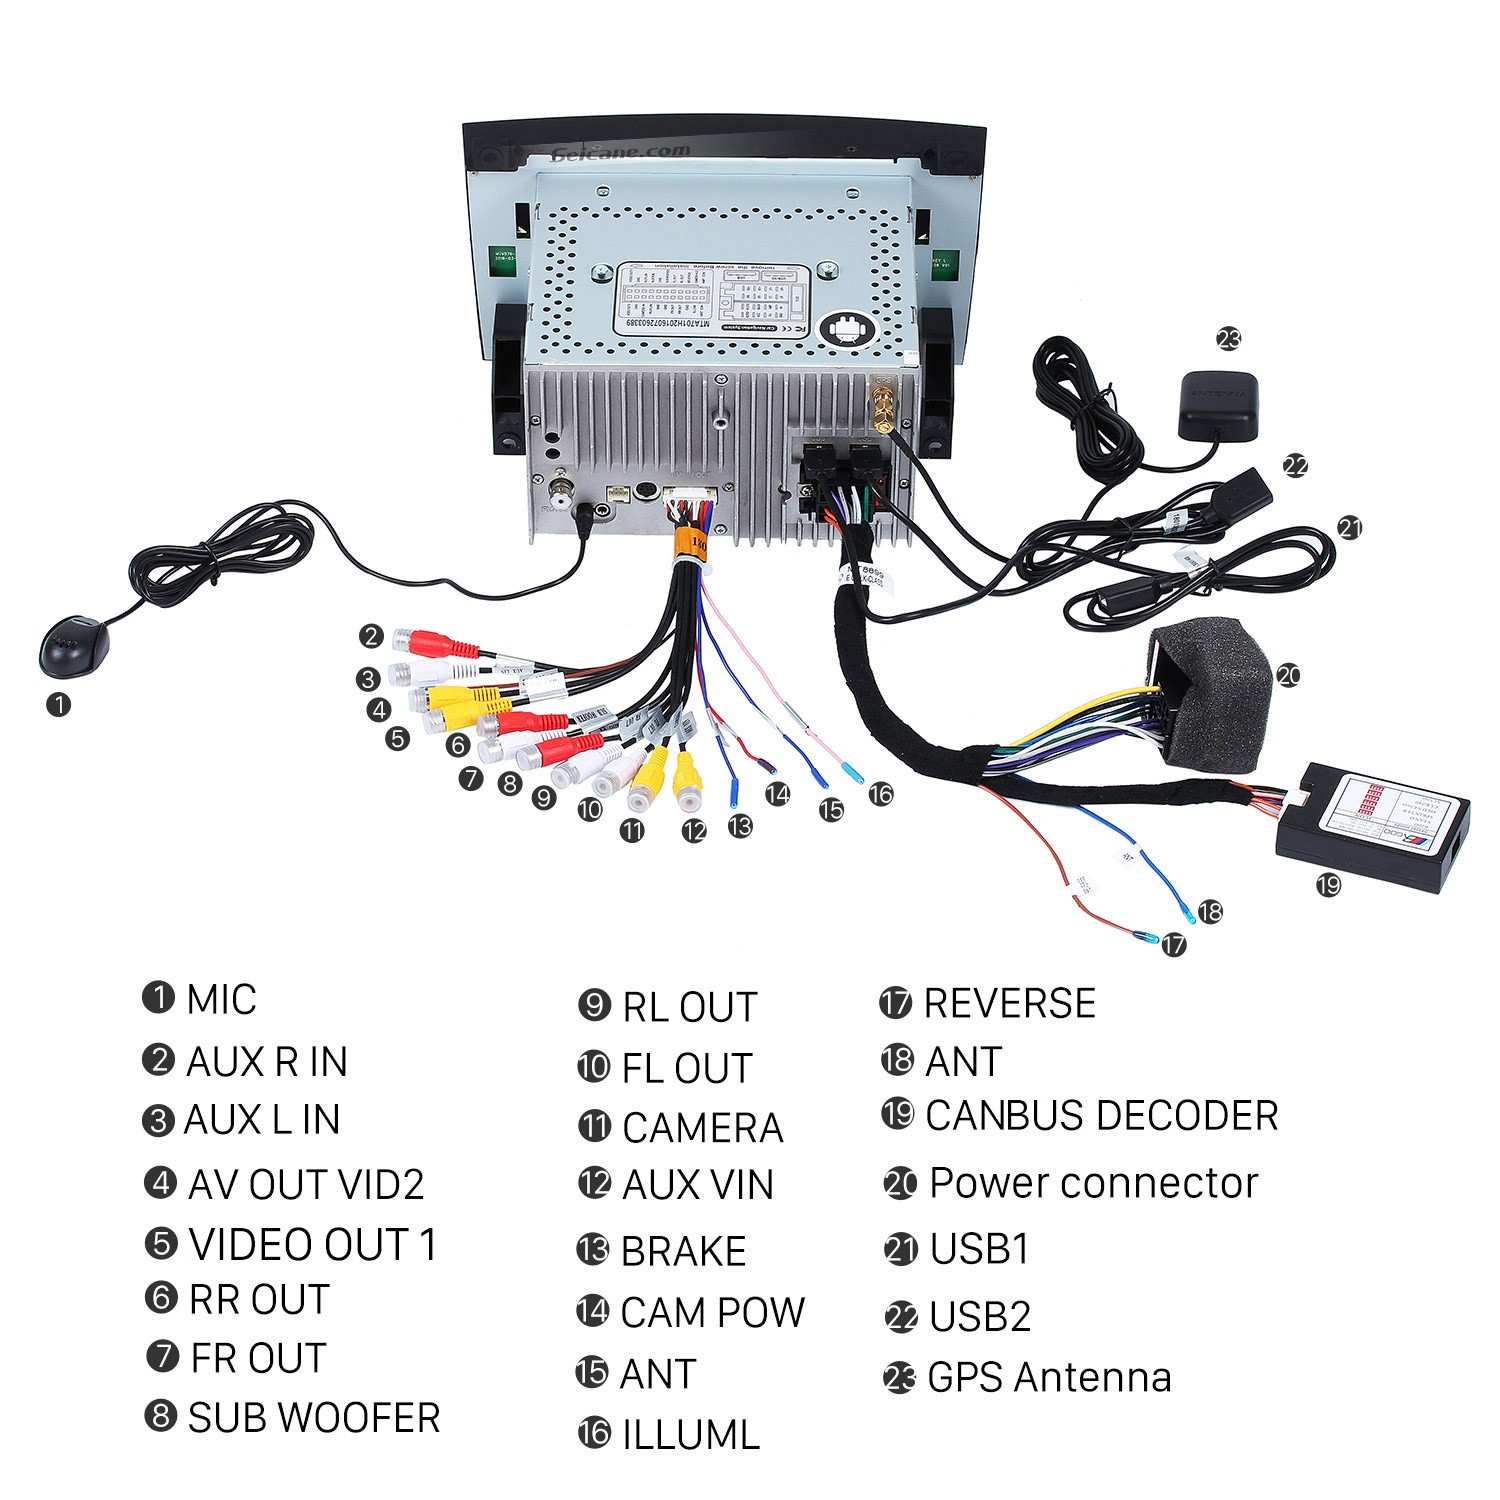 Mercedes 2003 Slk Radio Wiring Diagram 38 Images Car Stereo Connect The Harnesses To Back Of New Seicane 2000 2001